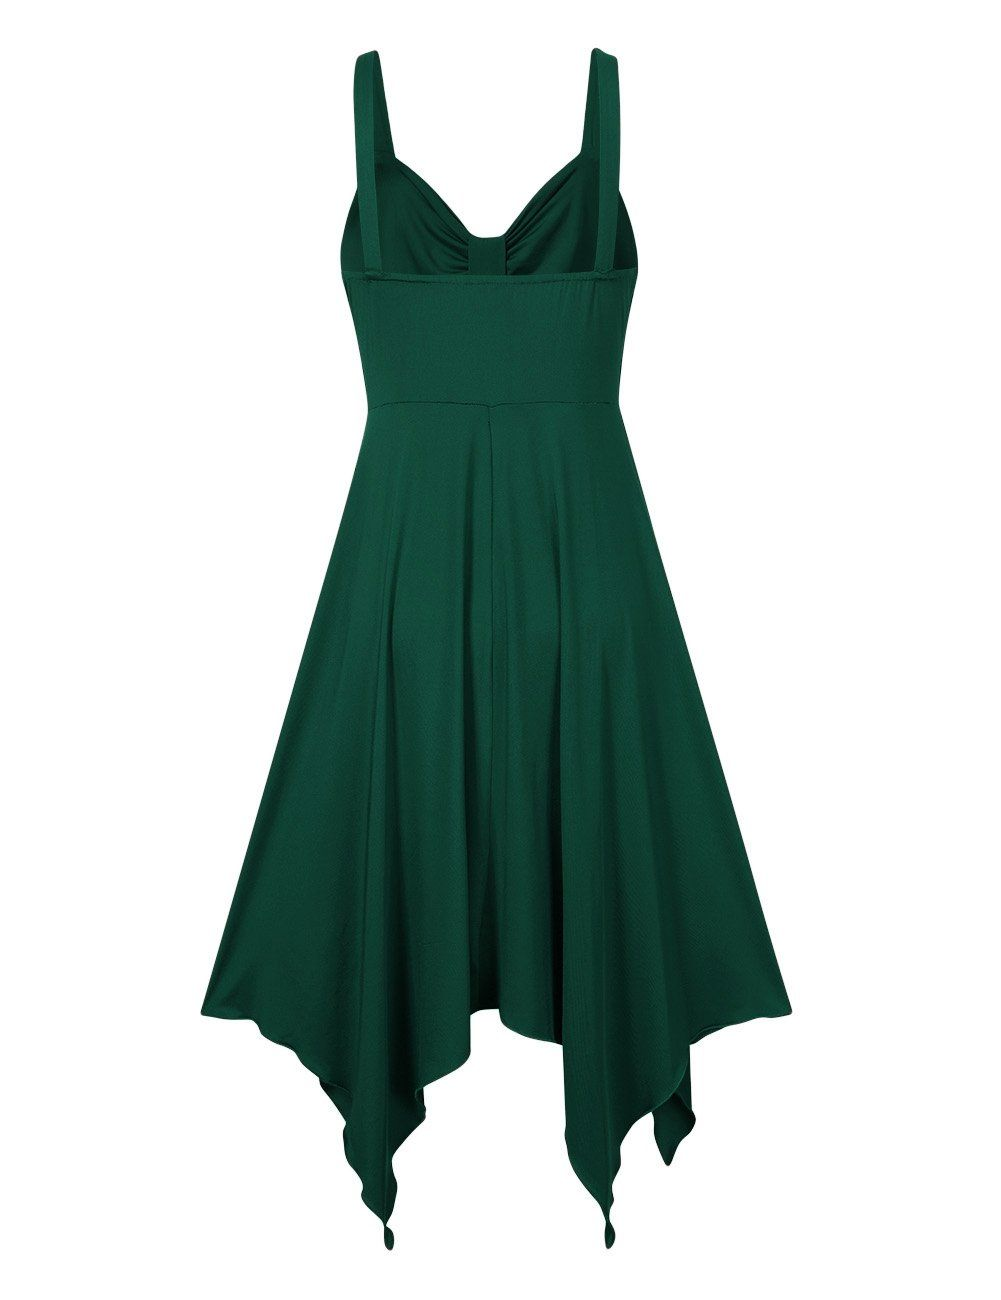 191b317a Leadingstar Women Spaghetti Strap Irregular Hem Summer Casual Beach Flared  Dress XL Dark Green ** To view further for this item, visit the image link.